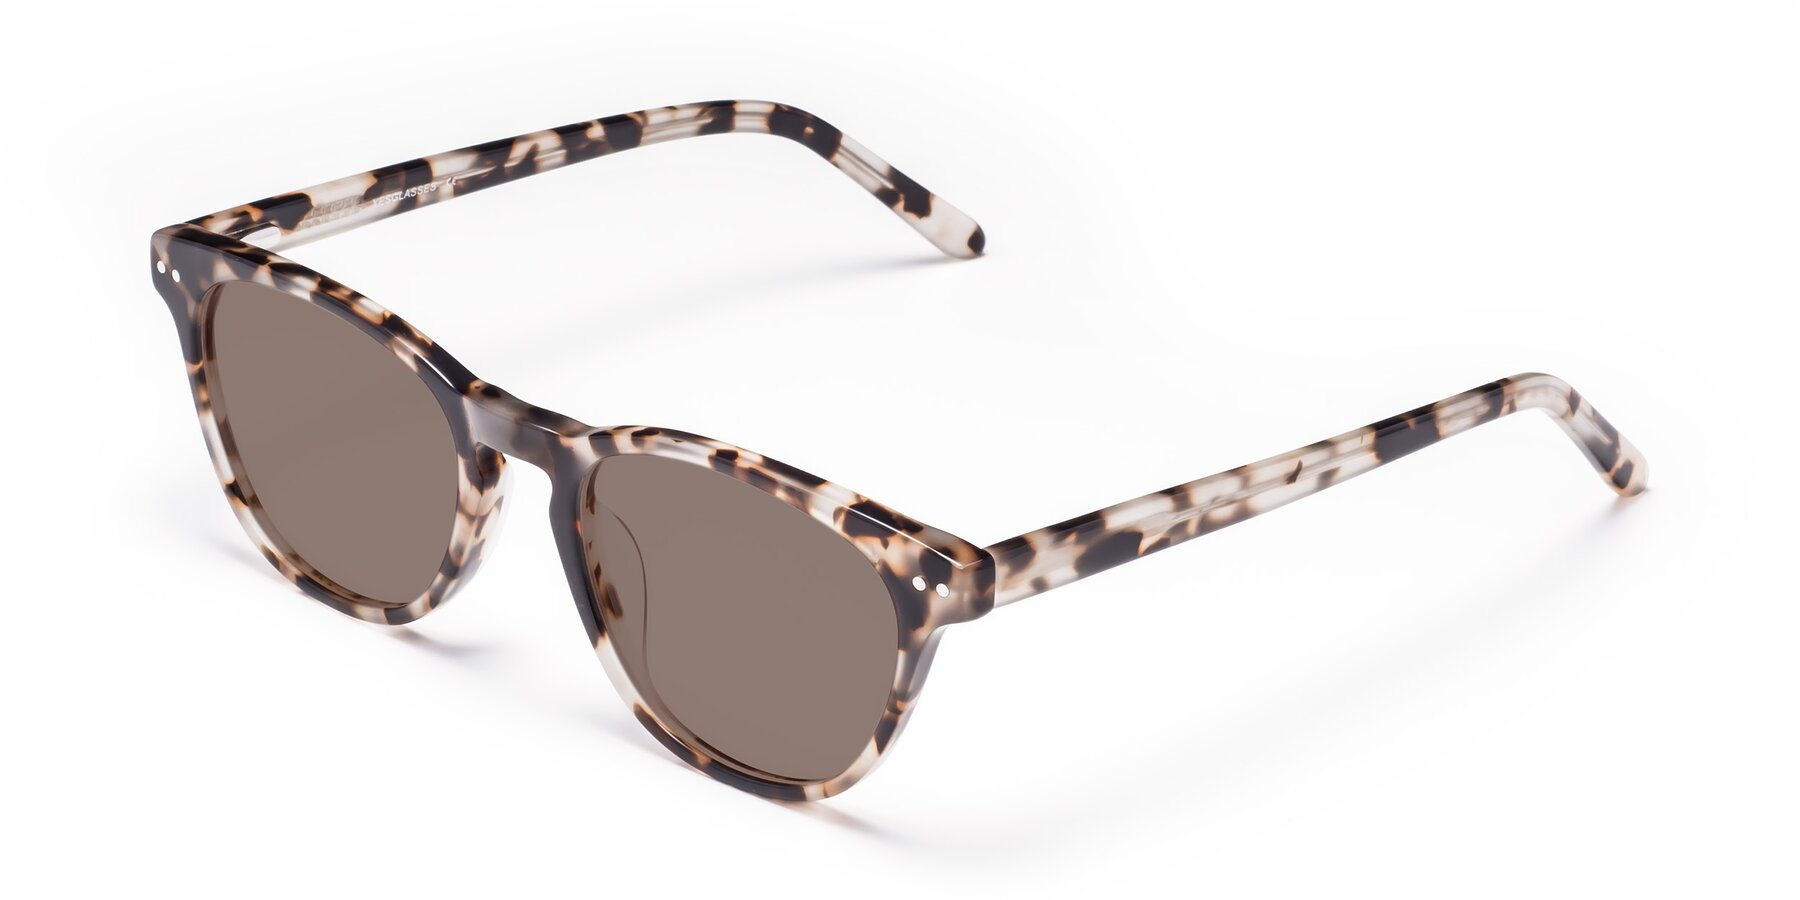 Angle of Blaze in Tortoise with Medium Brown Tinted Lenses